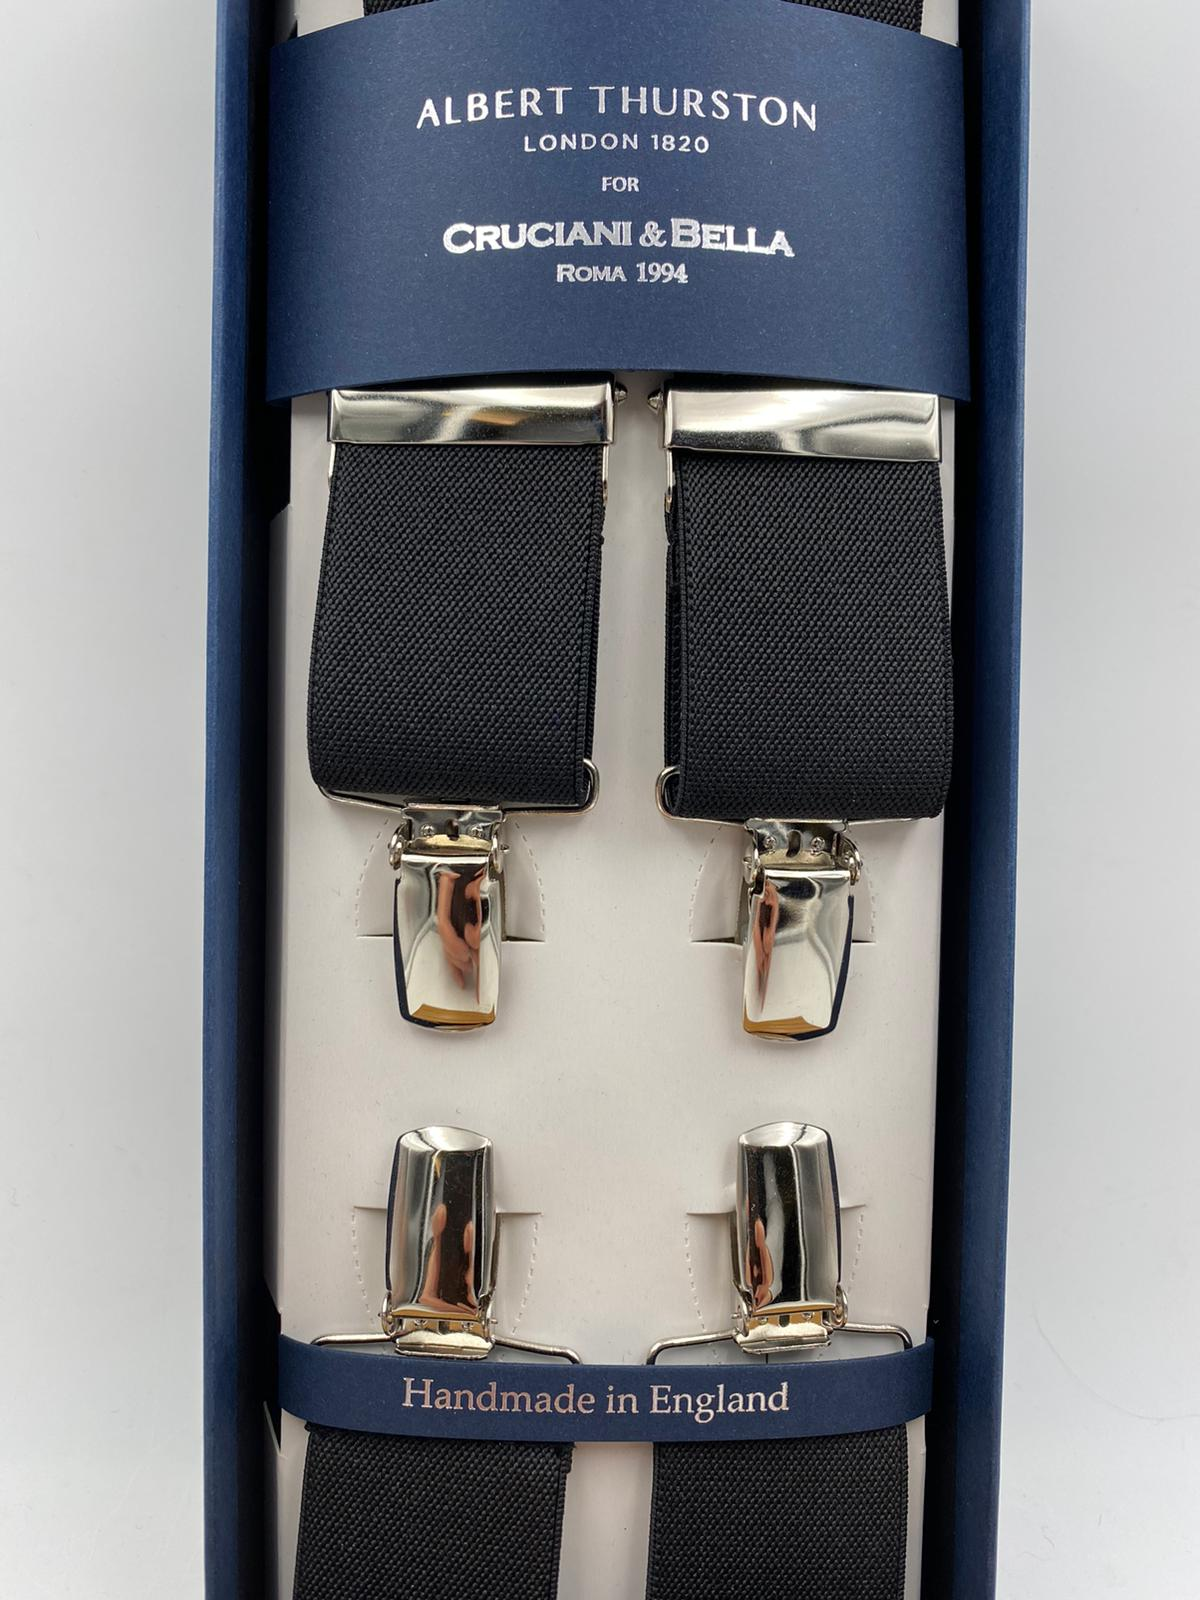 Albert Thurston for Cruciani & Bella Made in England Clip on Adjustable Sizing 35 mm elastic braces Black Plain X-Shaped Nickel Fittings Size: L #4823